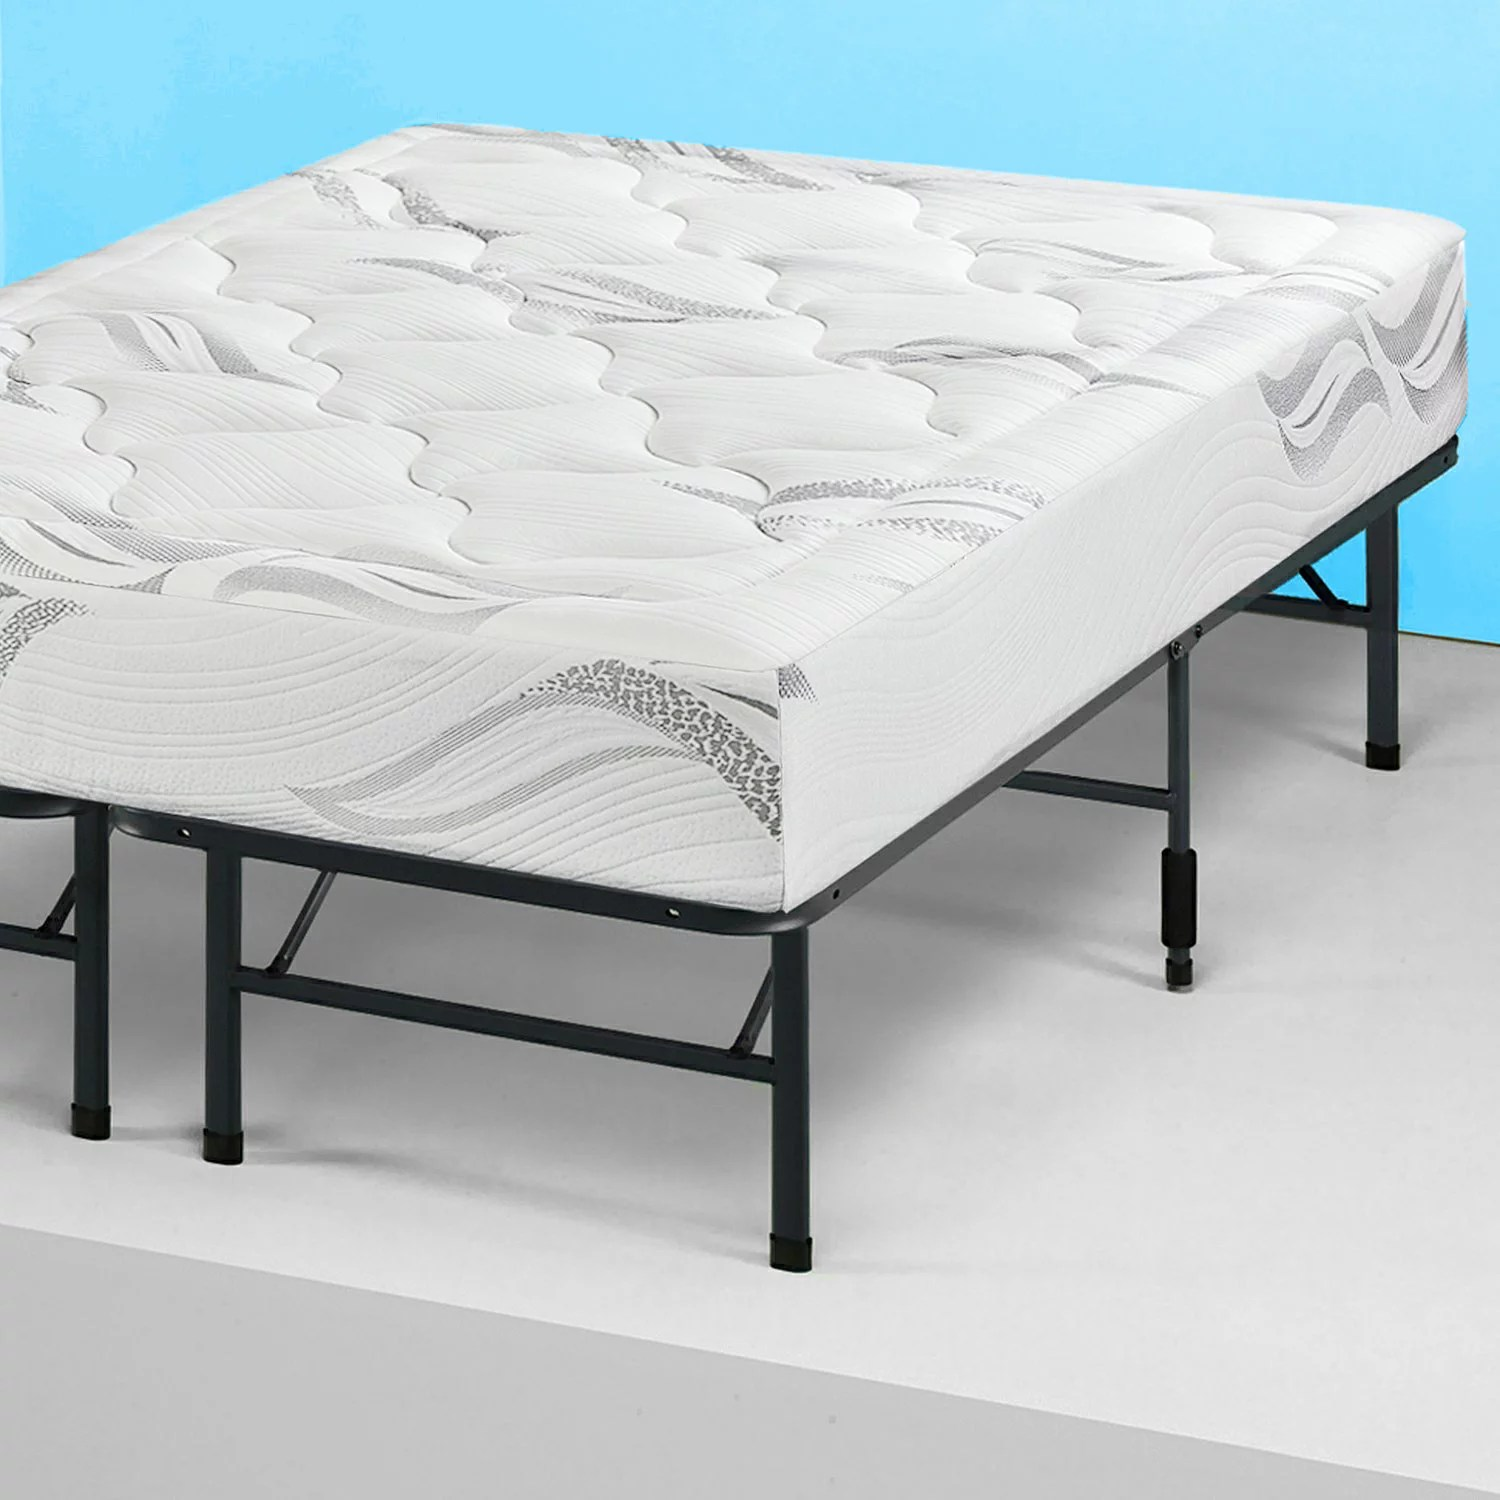 Mattress Platform King Modern Bi Fold Folding Platform Metal Bed Frame Mattress Foundation